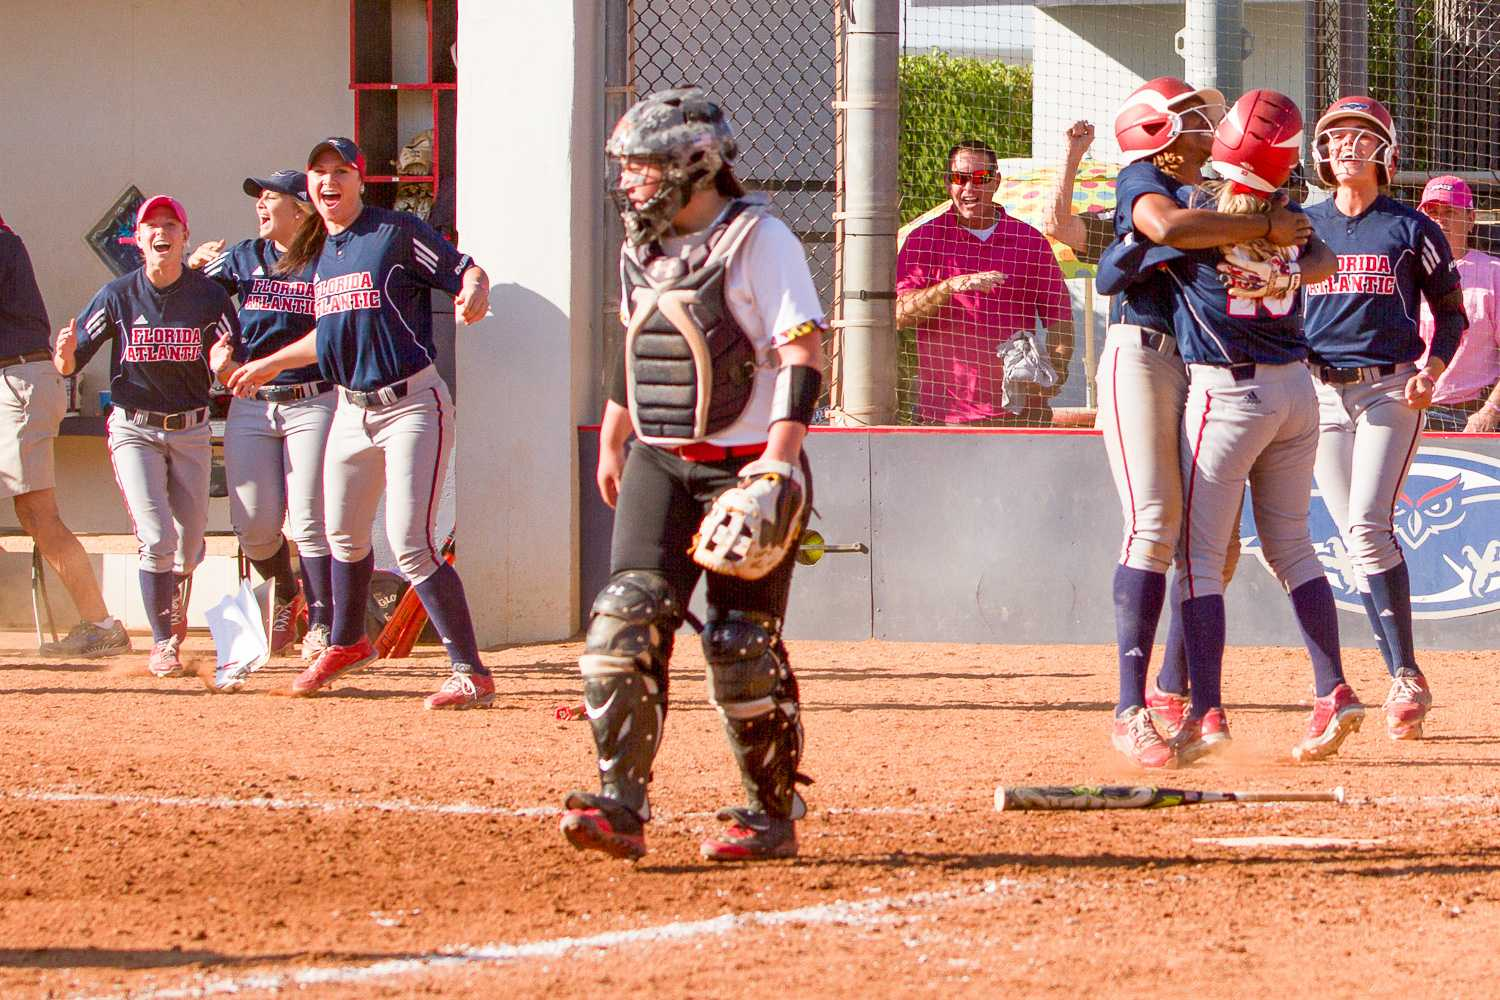 enior outfielder Lindsay Shell is rushed by teammates after scoring the game winning run on an errant throw to first base. The Owls have now won eight in a row, and have come from behind in two of their nine victories this season.